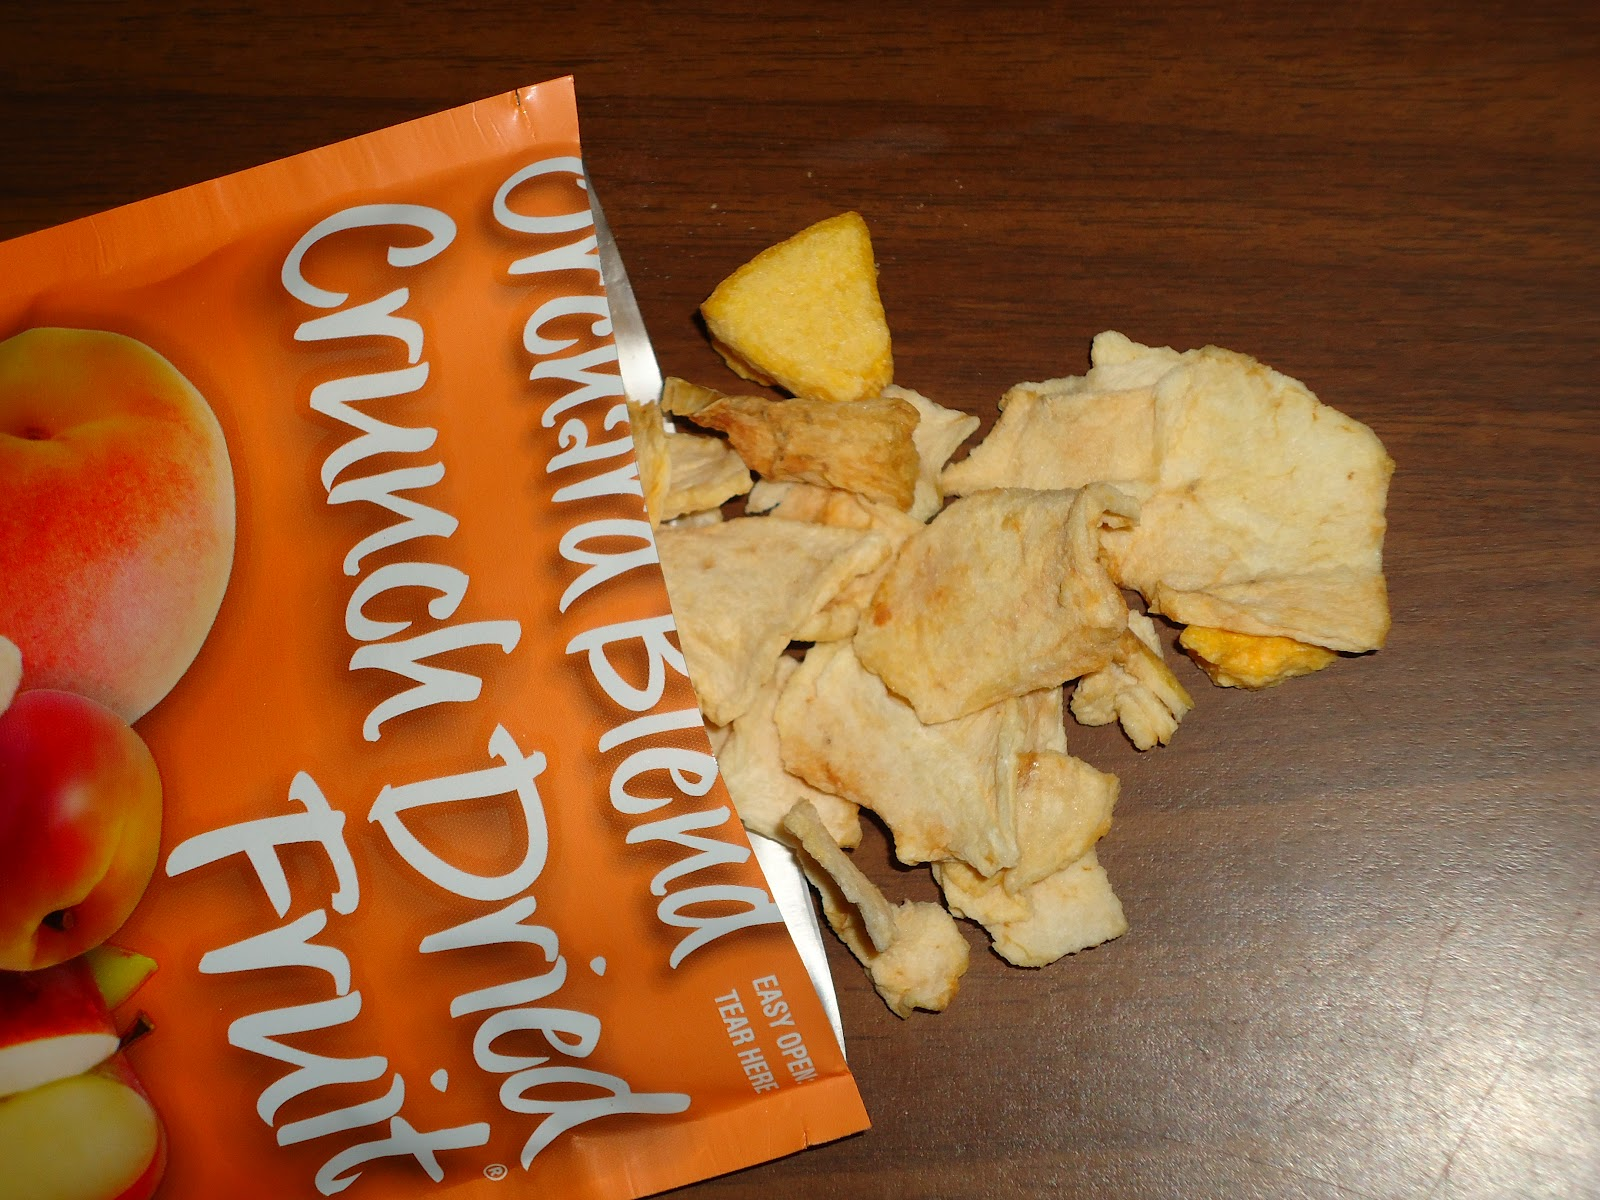 Sensible Foods Crunch Dried Snacks Review